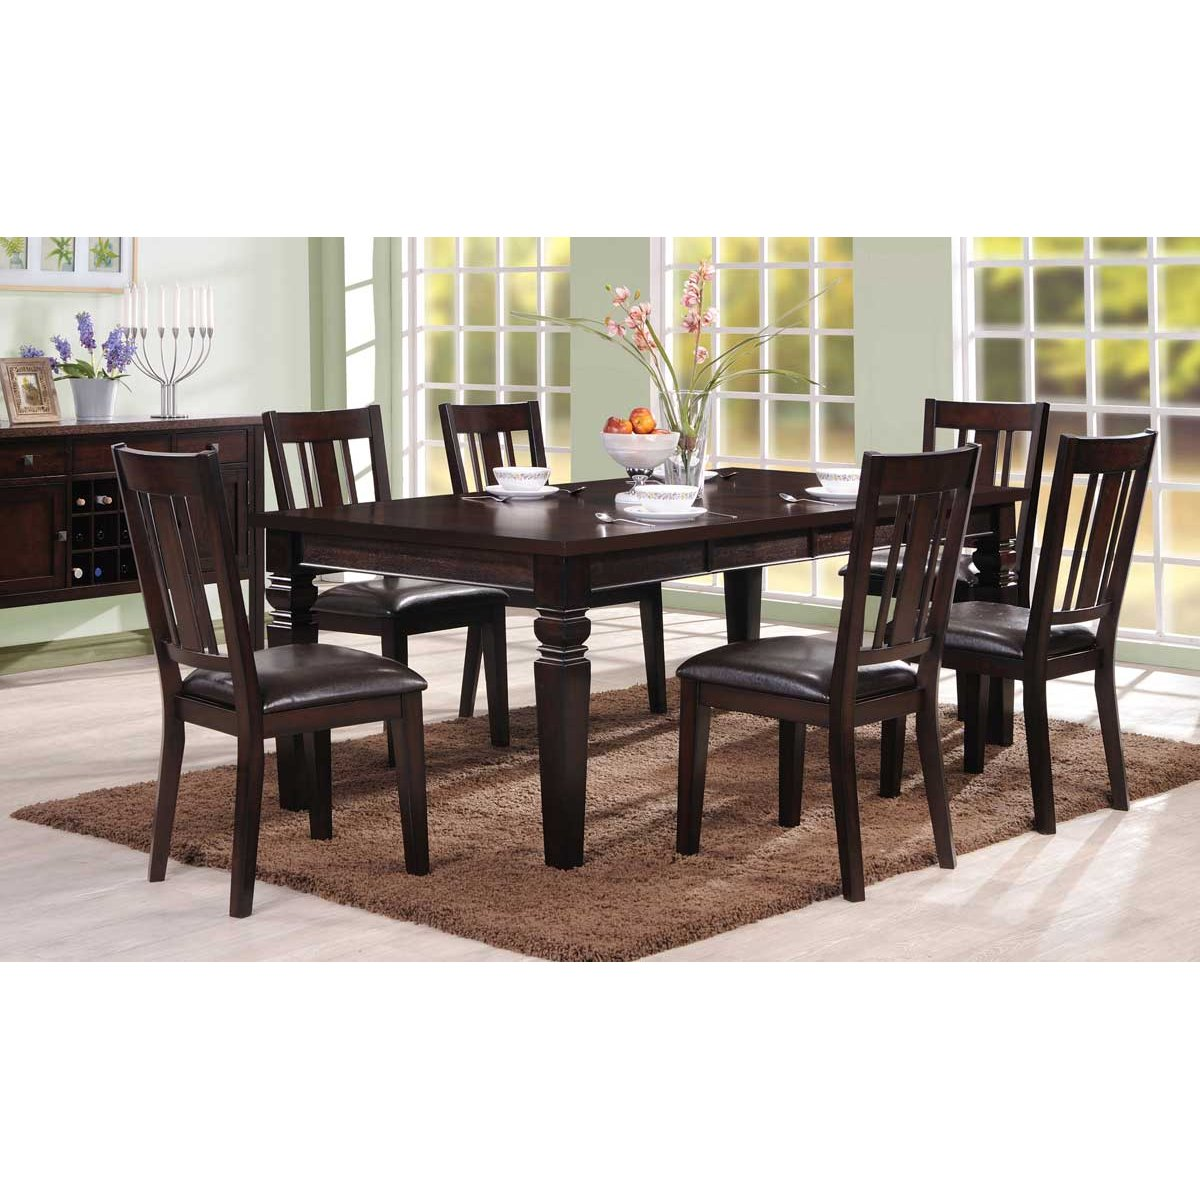 Willey Furniture: Homelegance 5 Piece Dining Set